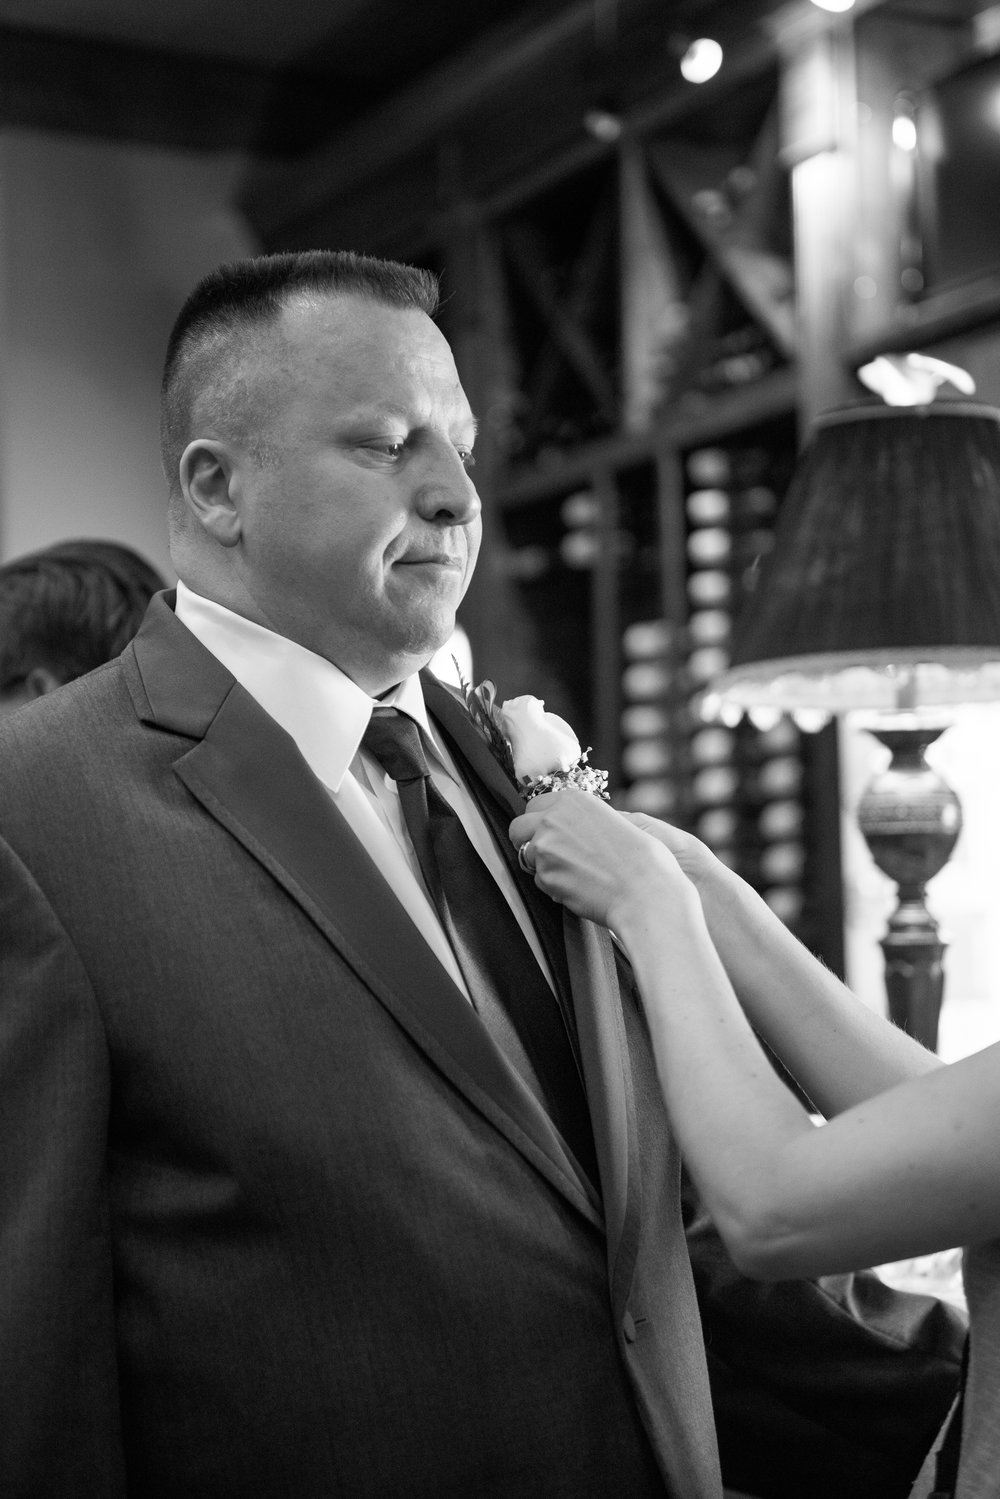 AkersKing_wedding_bw-204 copy.jpg